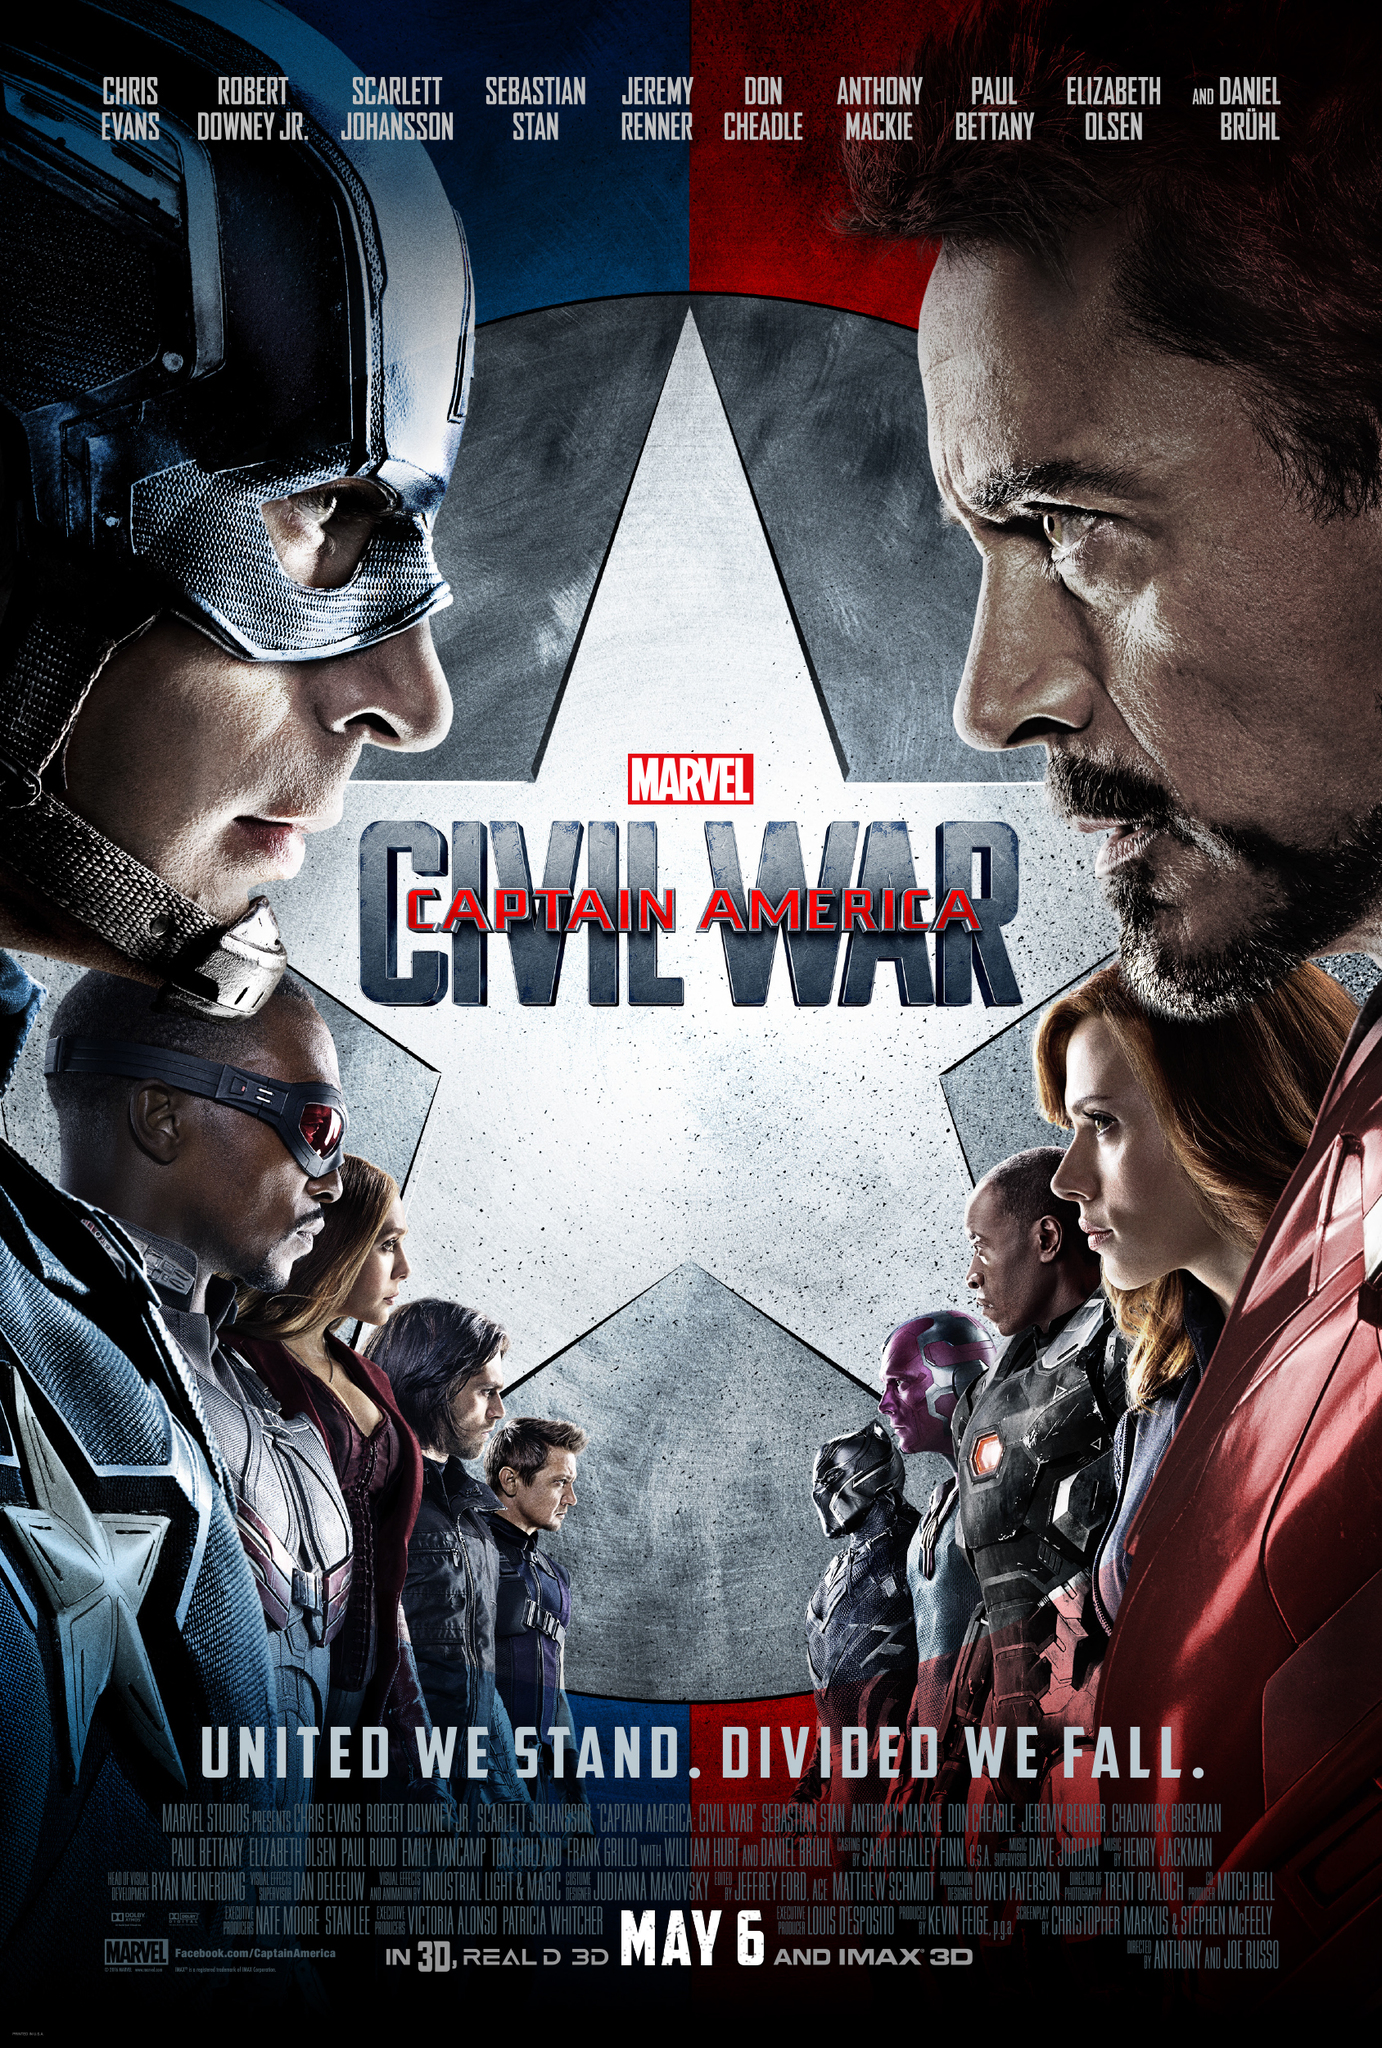 Image result for civil war movie poster imdb""